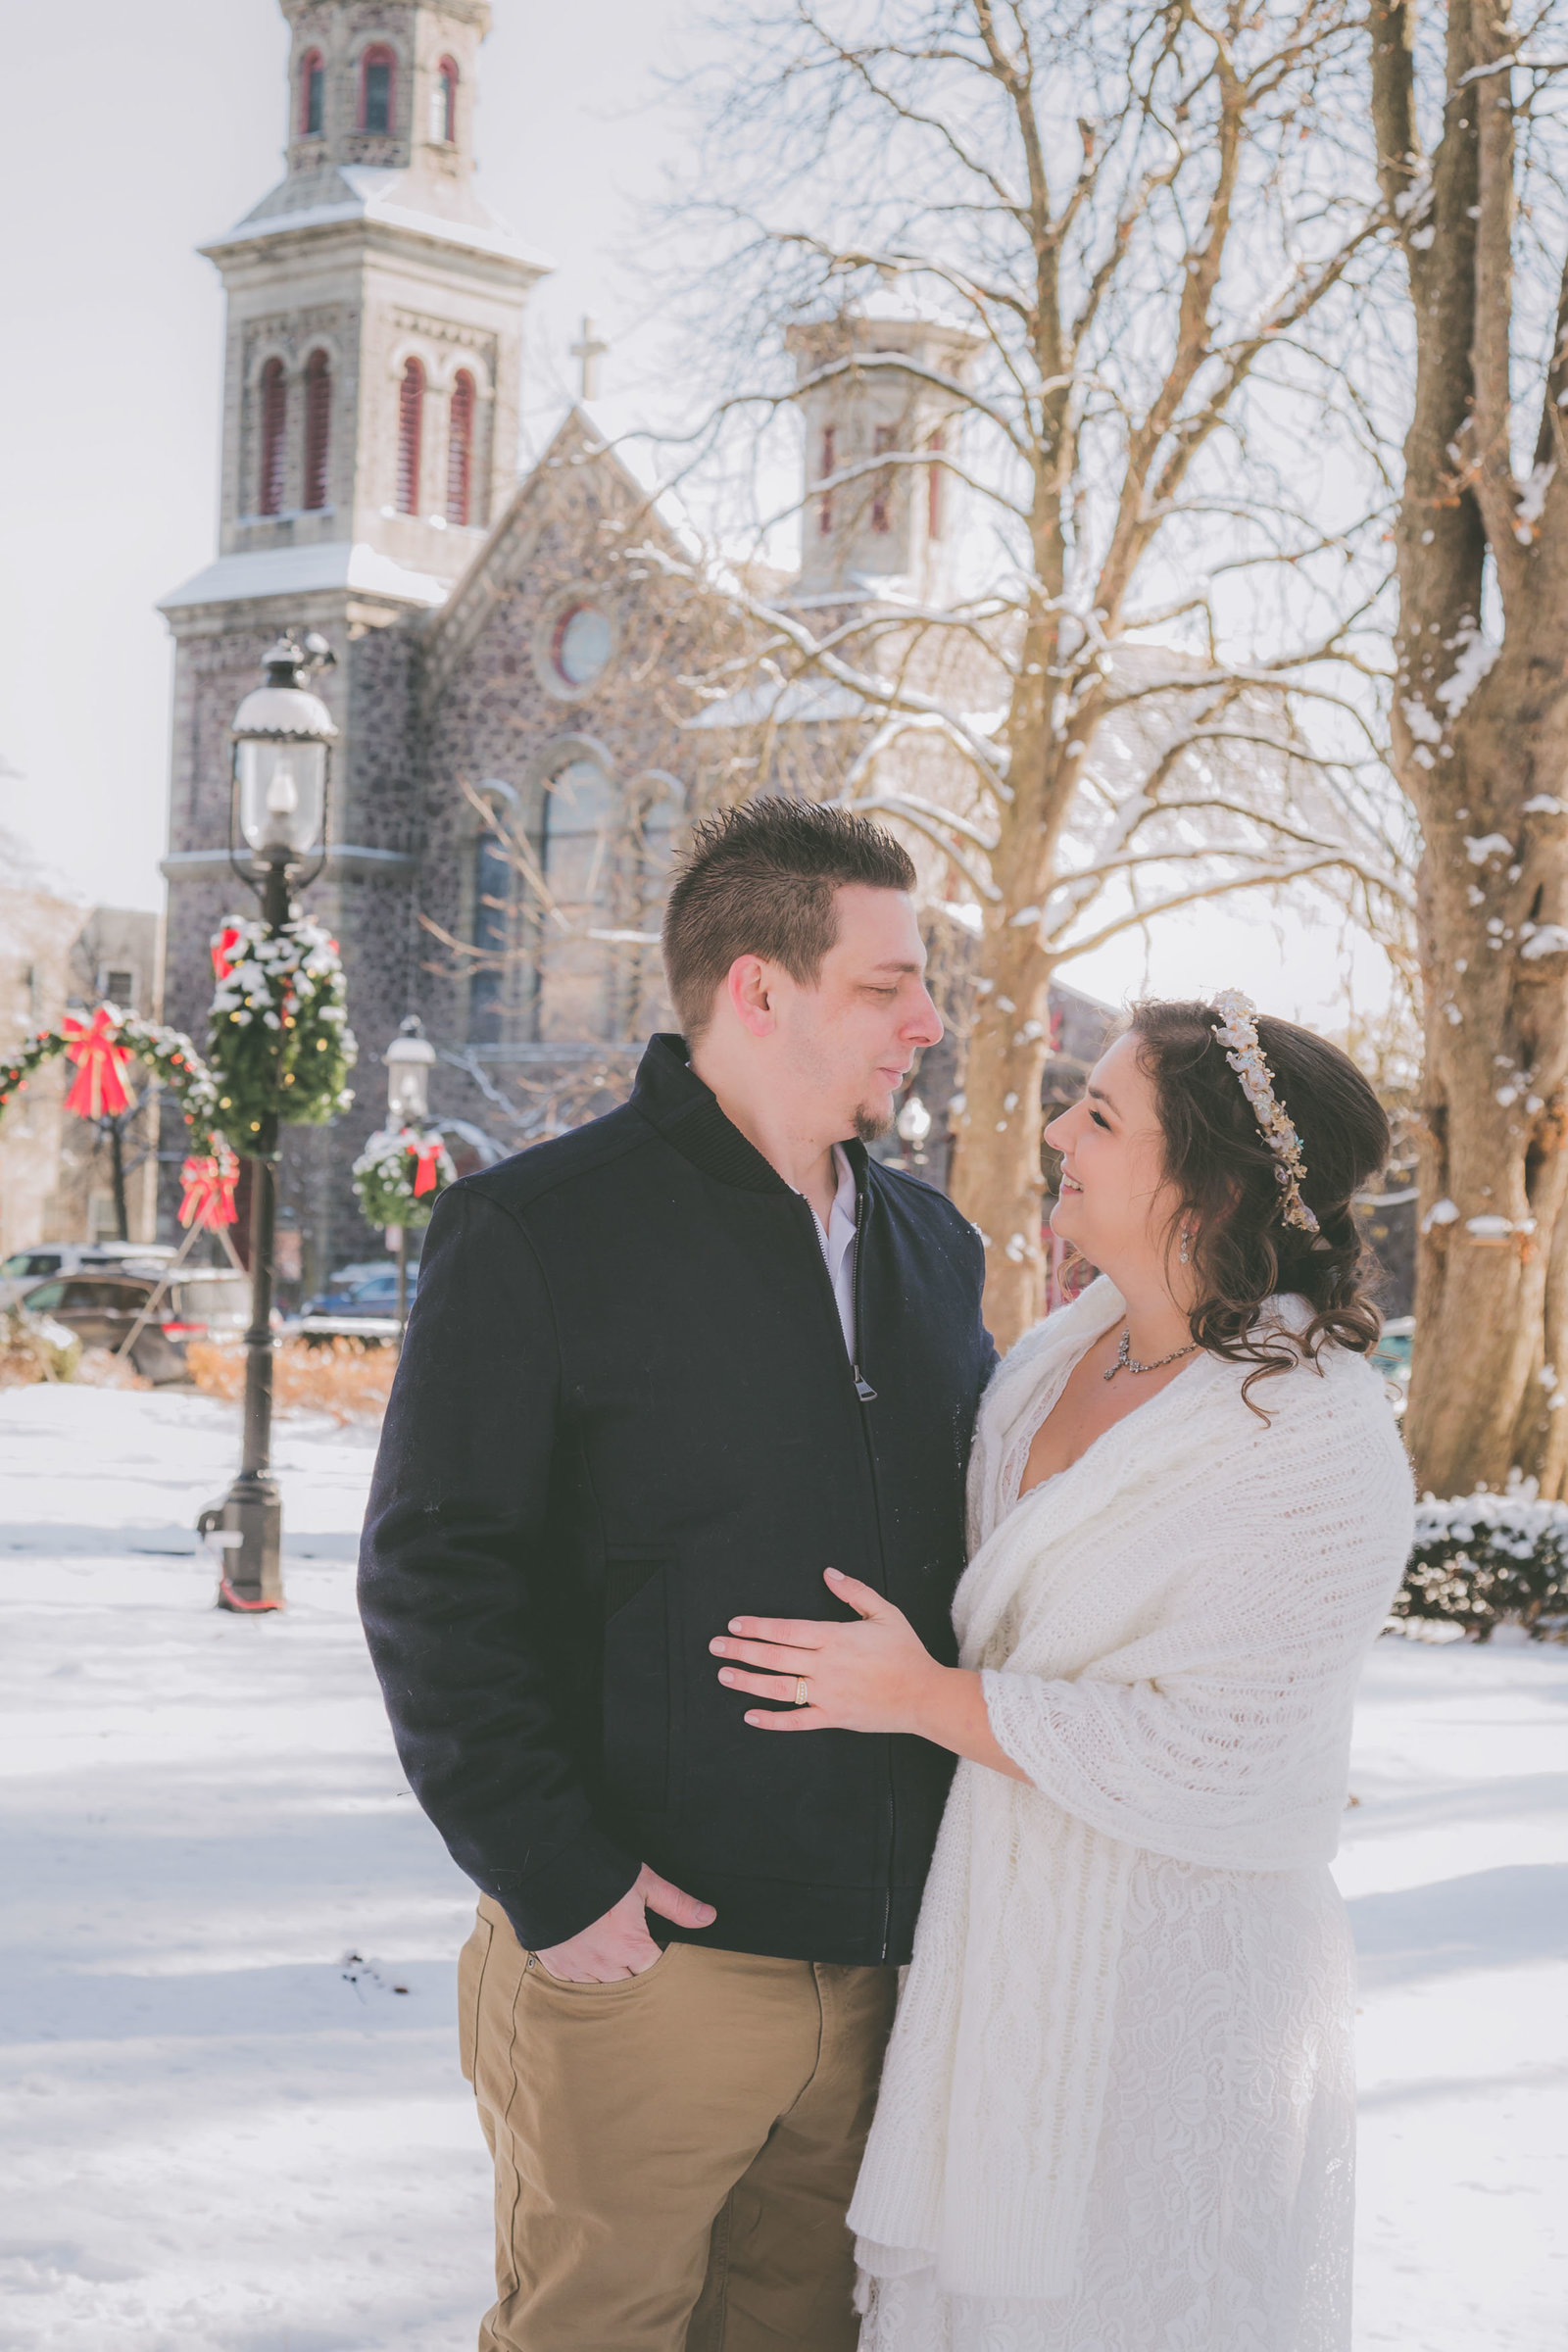 Couple looks at each other while NJ church in background on a snow covered day.